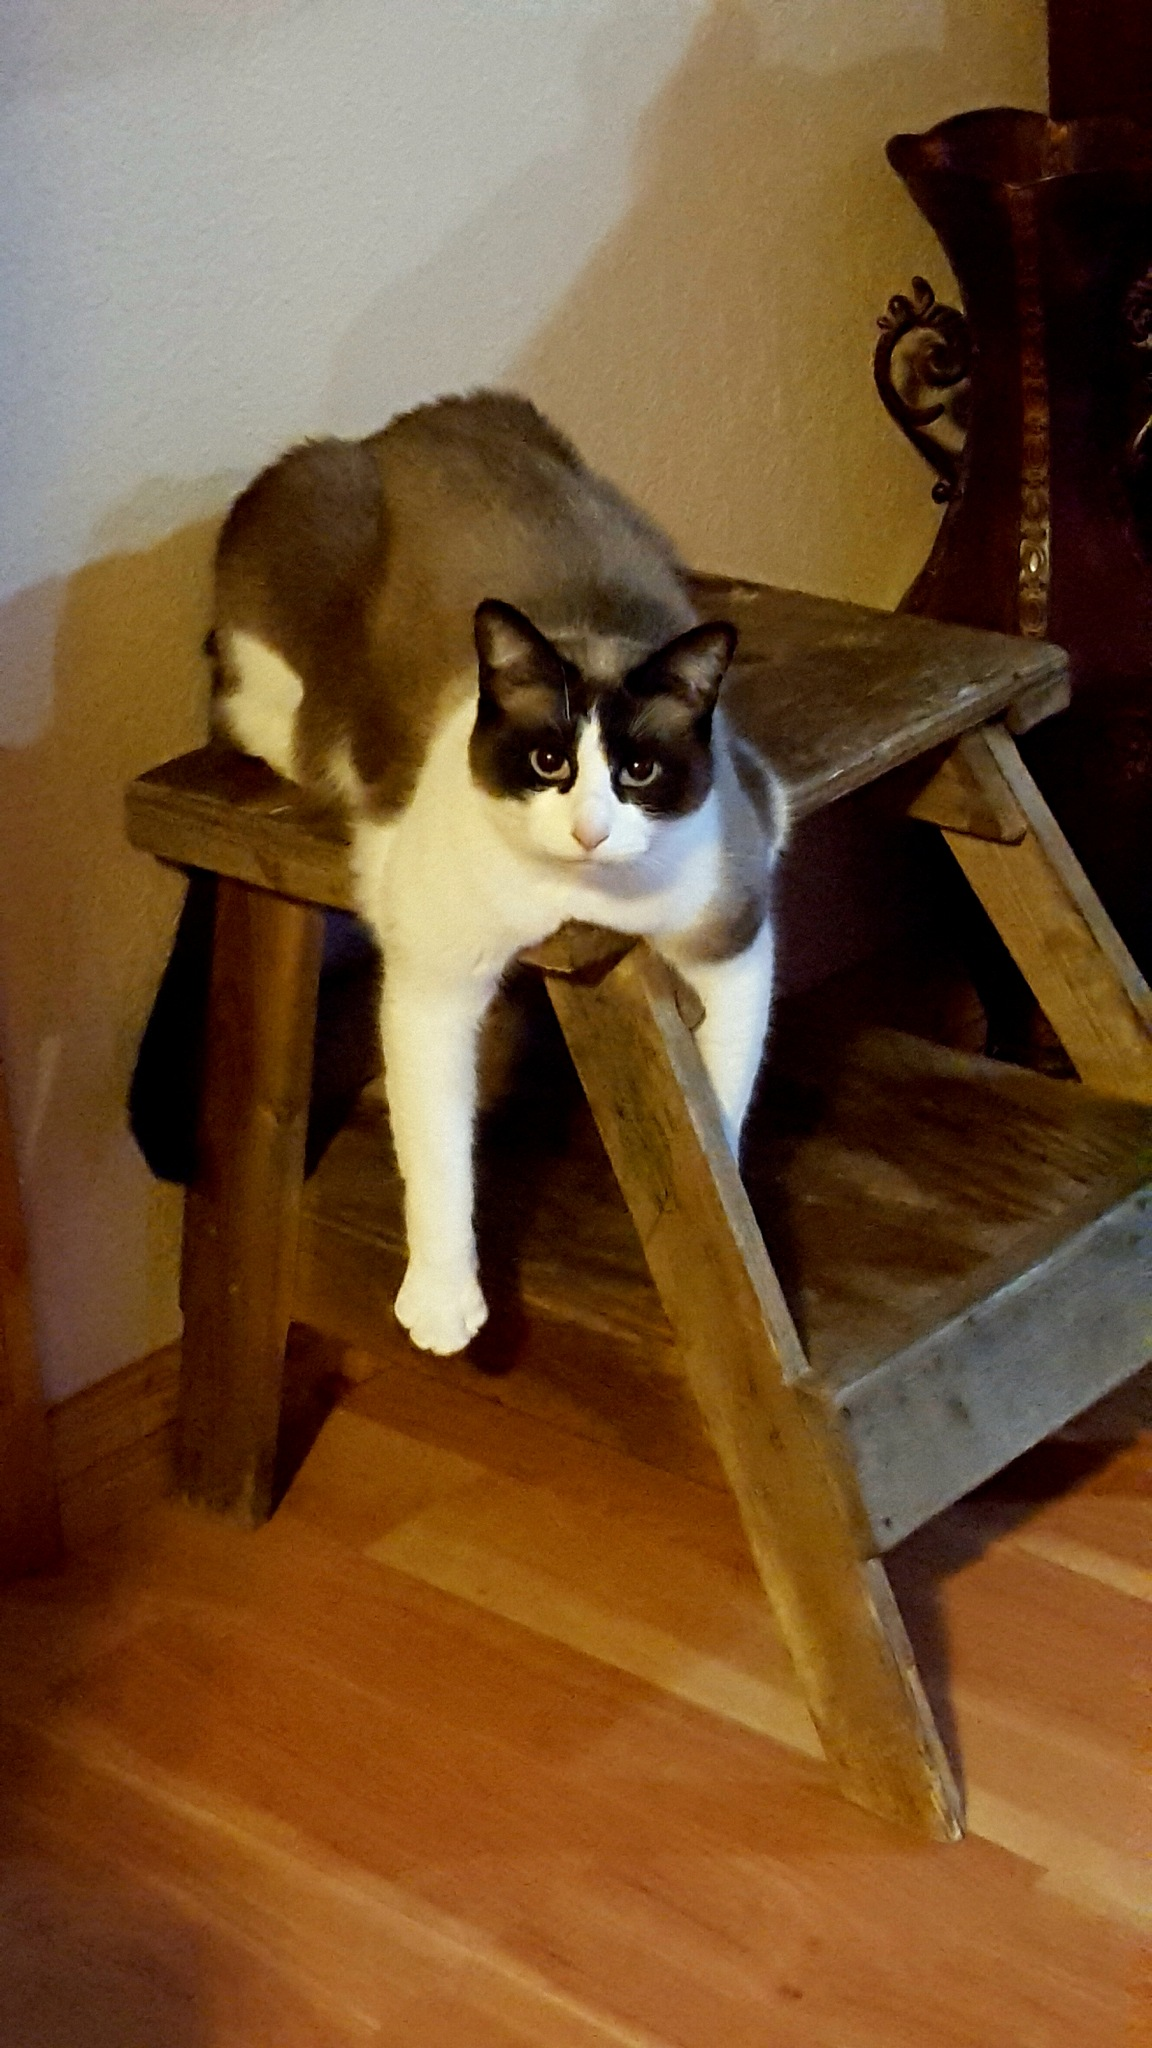 The Cat On The Stool  by Carolyn Stineman